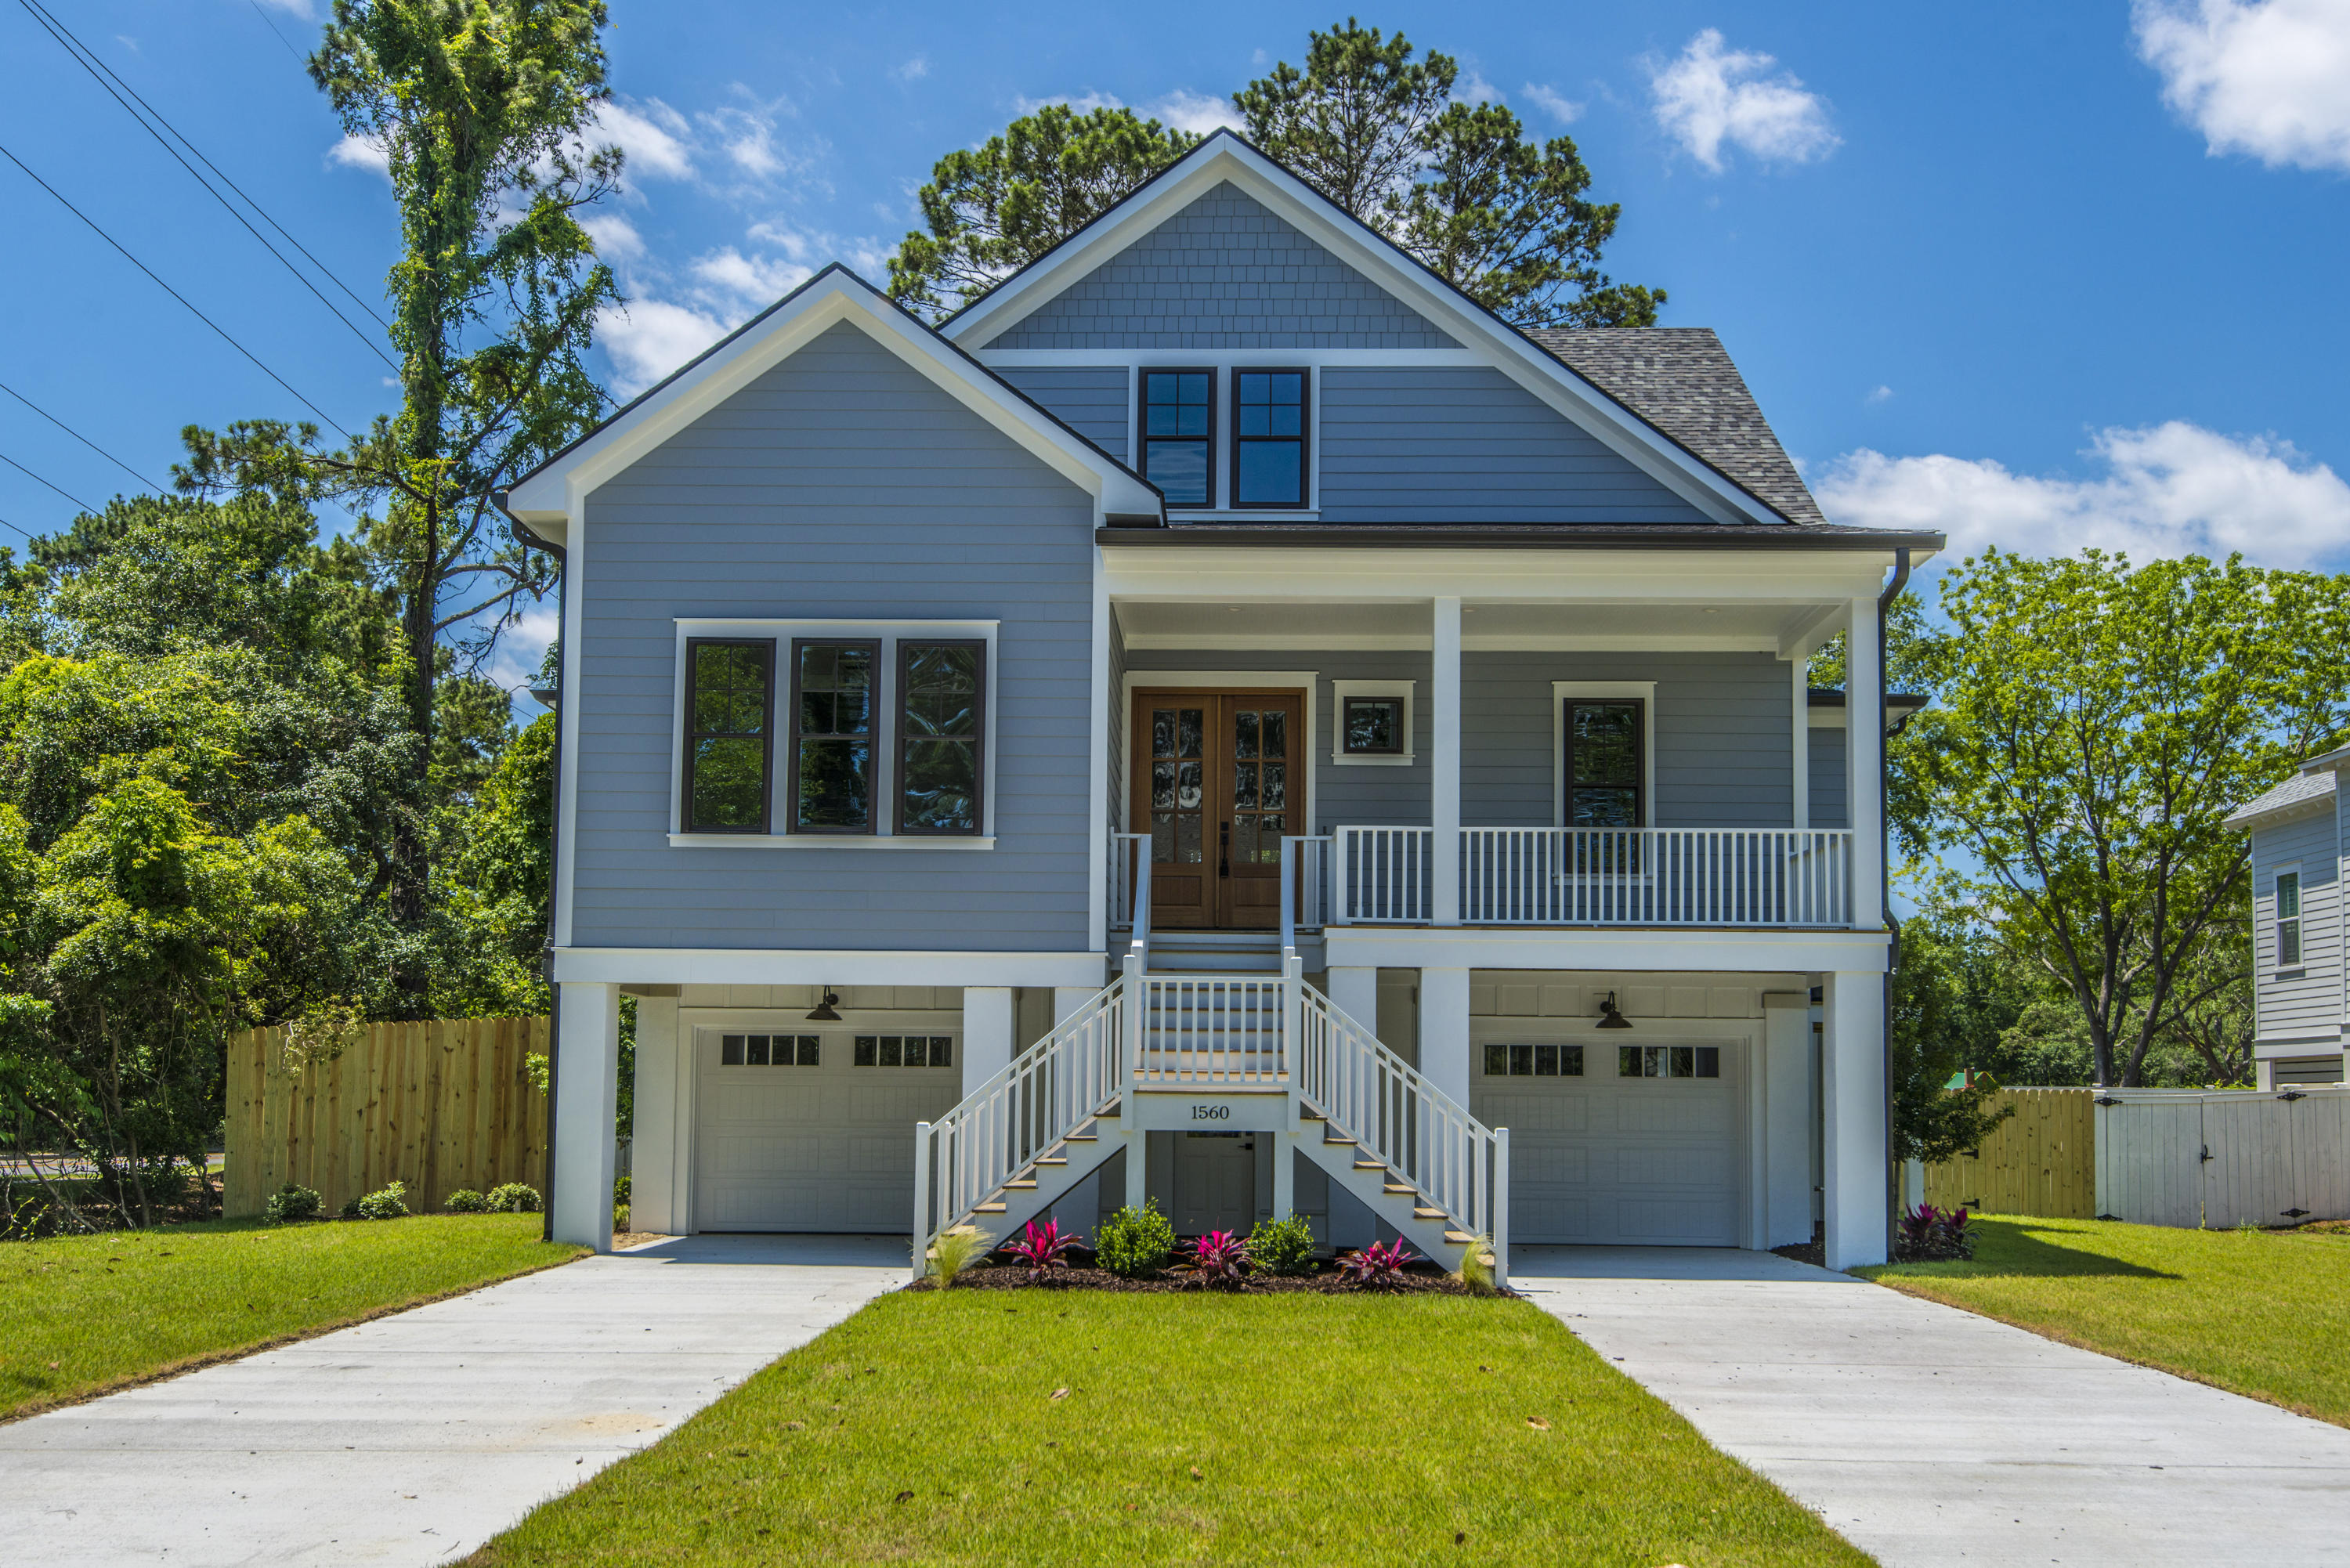 Shell Point Homes For Sale - 1560 Appling, Mount Pleasant, SC - 58